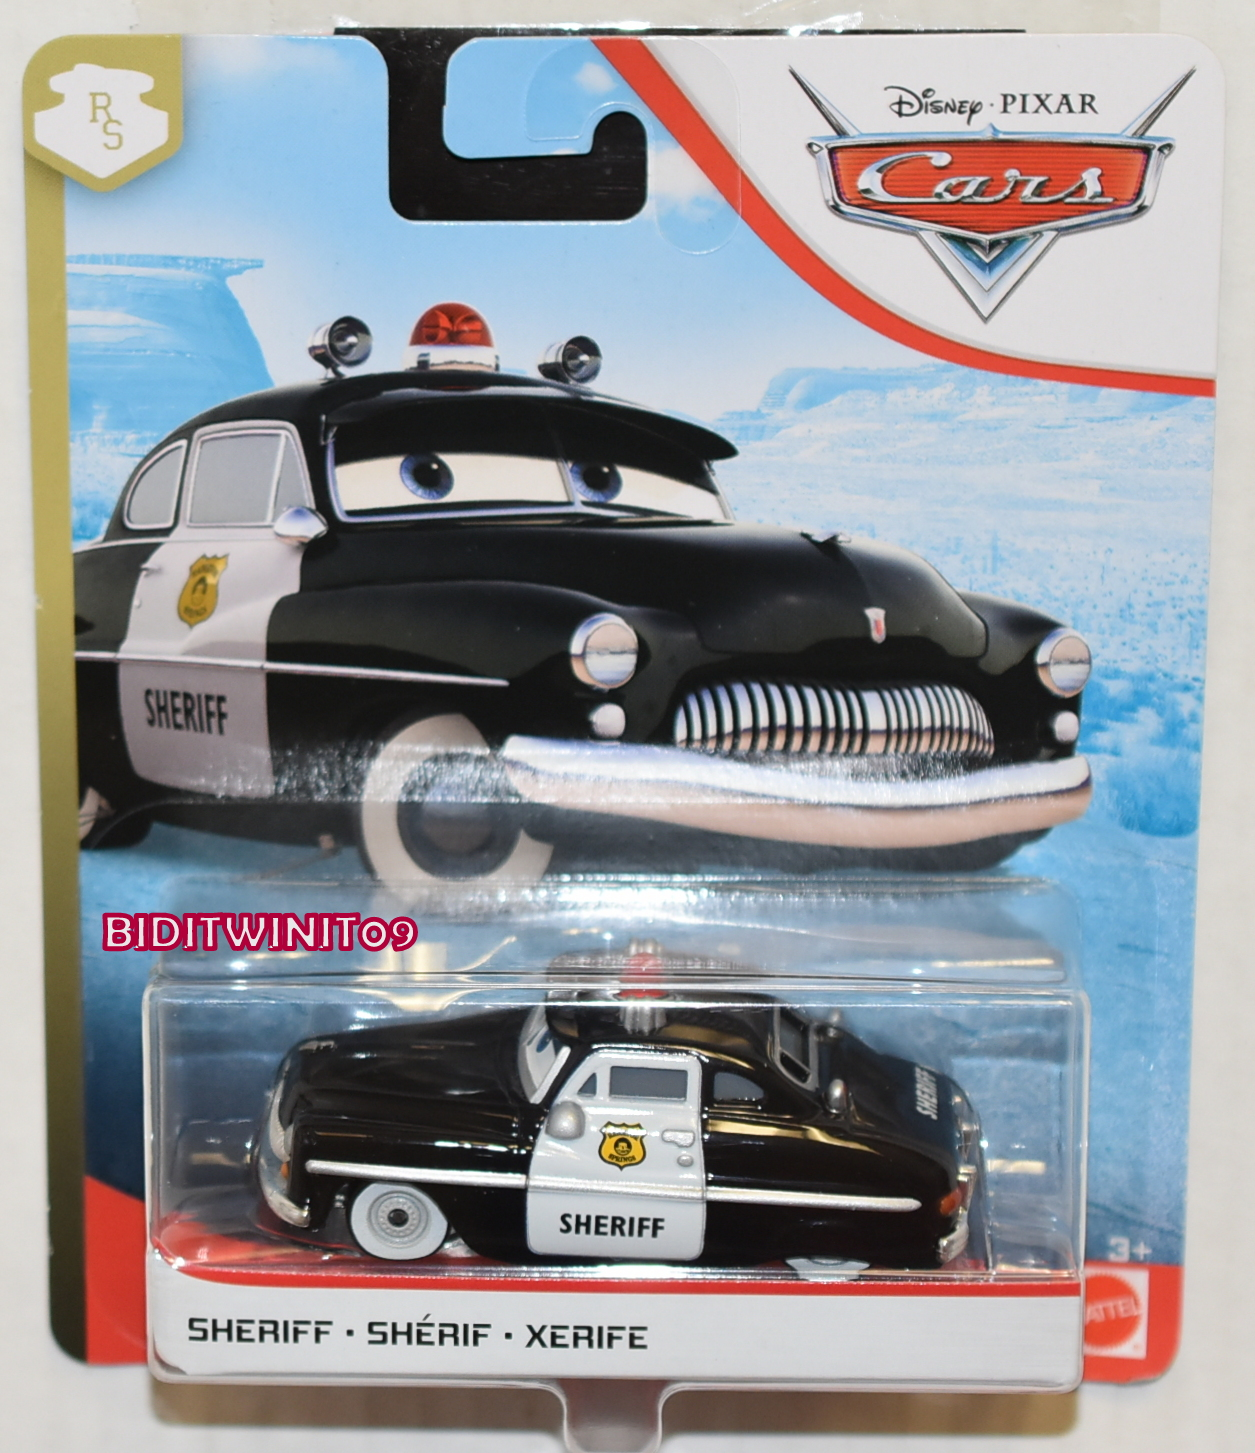 DISNEY PIXAR CARS 2020 SHERIFF E+